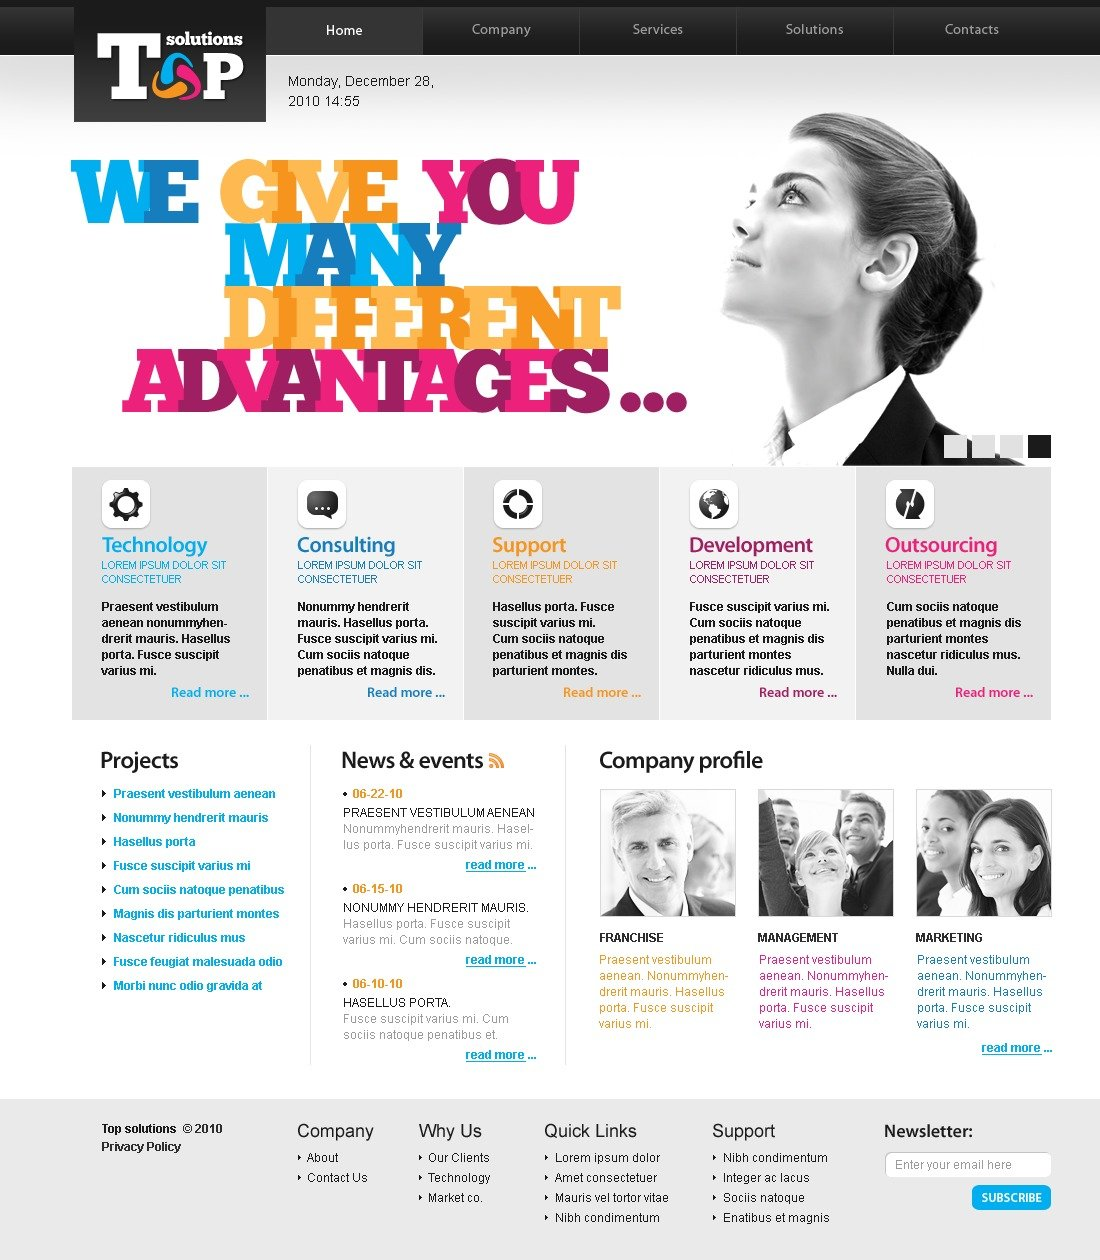 The Top Solutions PSD Design 54130, one of the best PSD templates of its kind (business, flash 8, wide), also known as top solutions PSD template, business company PSD template, corporate solutions PSD template, innovations PSD template, contacts PSD template, service PSD template, support PSD template, information dealer PSD template, stocks PSD template, team PSD template, success PSD template, money PSD template, marketing PSD template, director PSD template, manager PSD template, analytics PSD template, planning PSD template, limited PSD template, office PSD template, sales and related with top solutions, business company, corporate solutions, innovations, contacts, service, support, information dealer, stocks, team, success, money, marketing, director, manager, analytics, planning, limited, office, sales, etc.